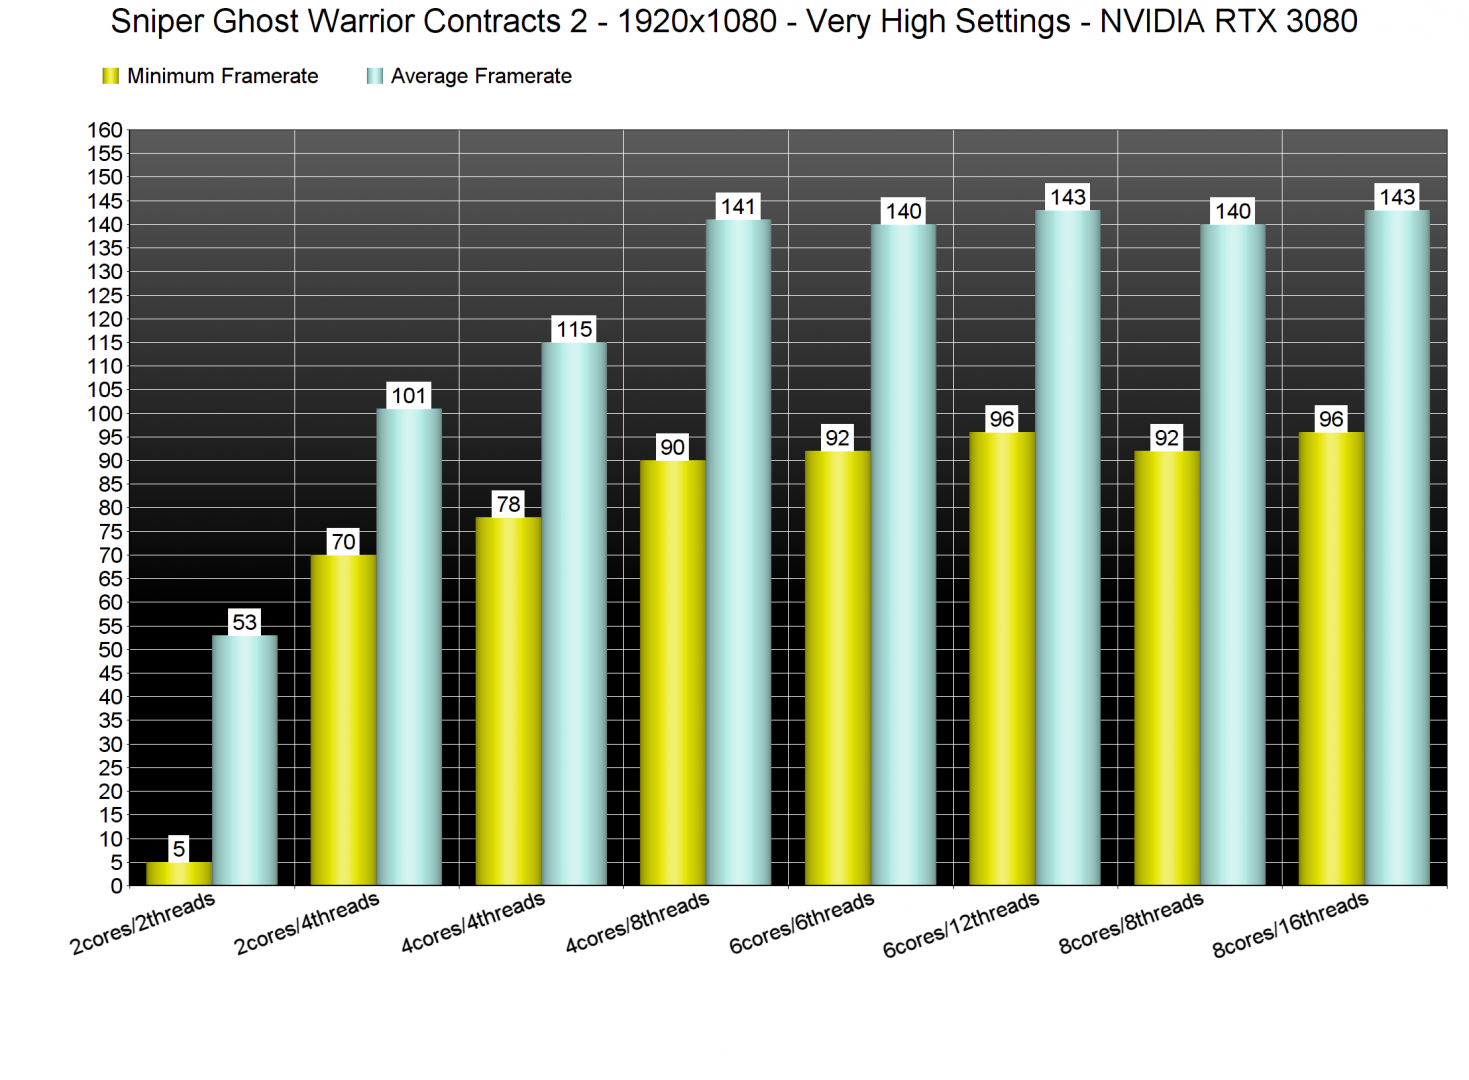 Sniper Ghost Warrior Contracts 2 CPU benchmarks